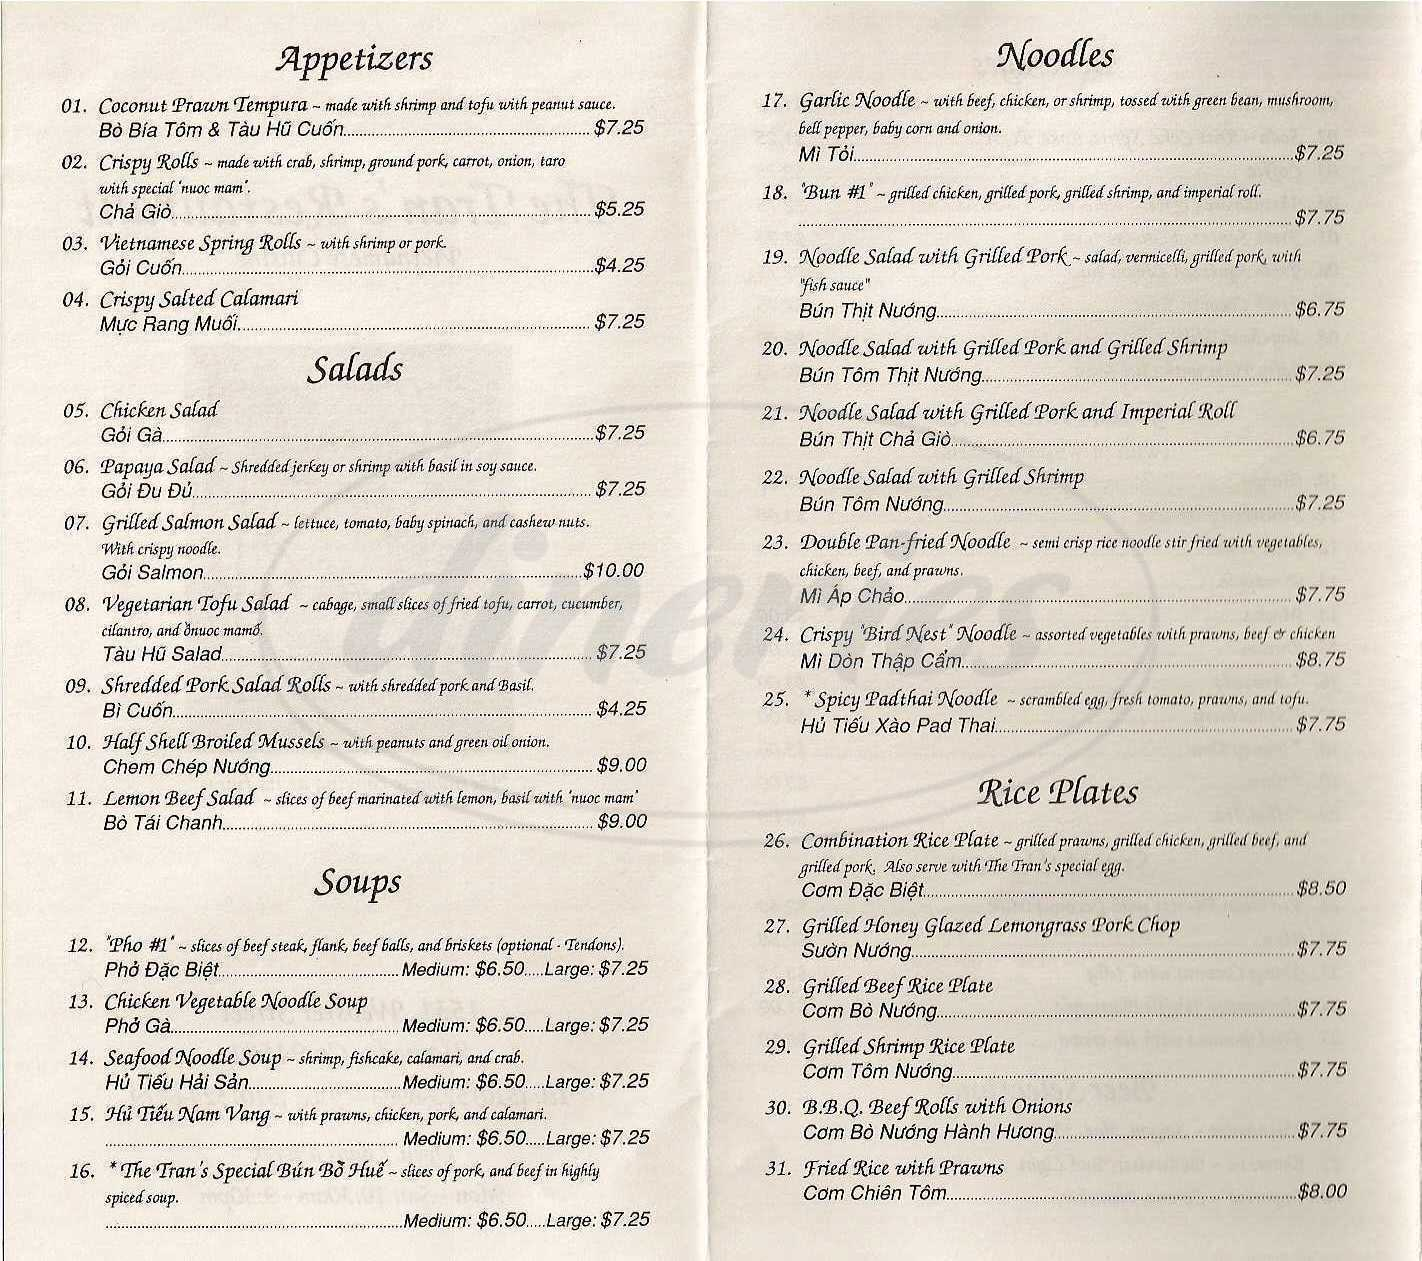 menu for The Tran's Restaurant